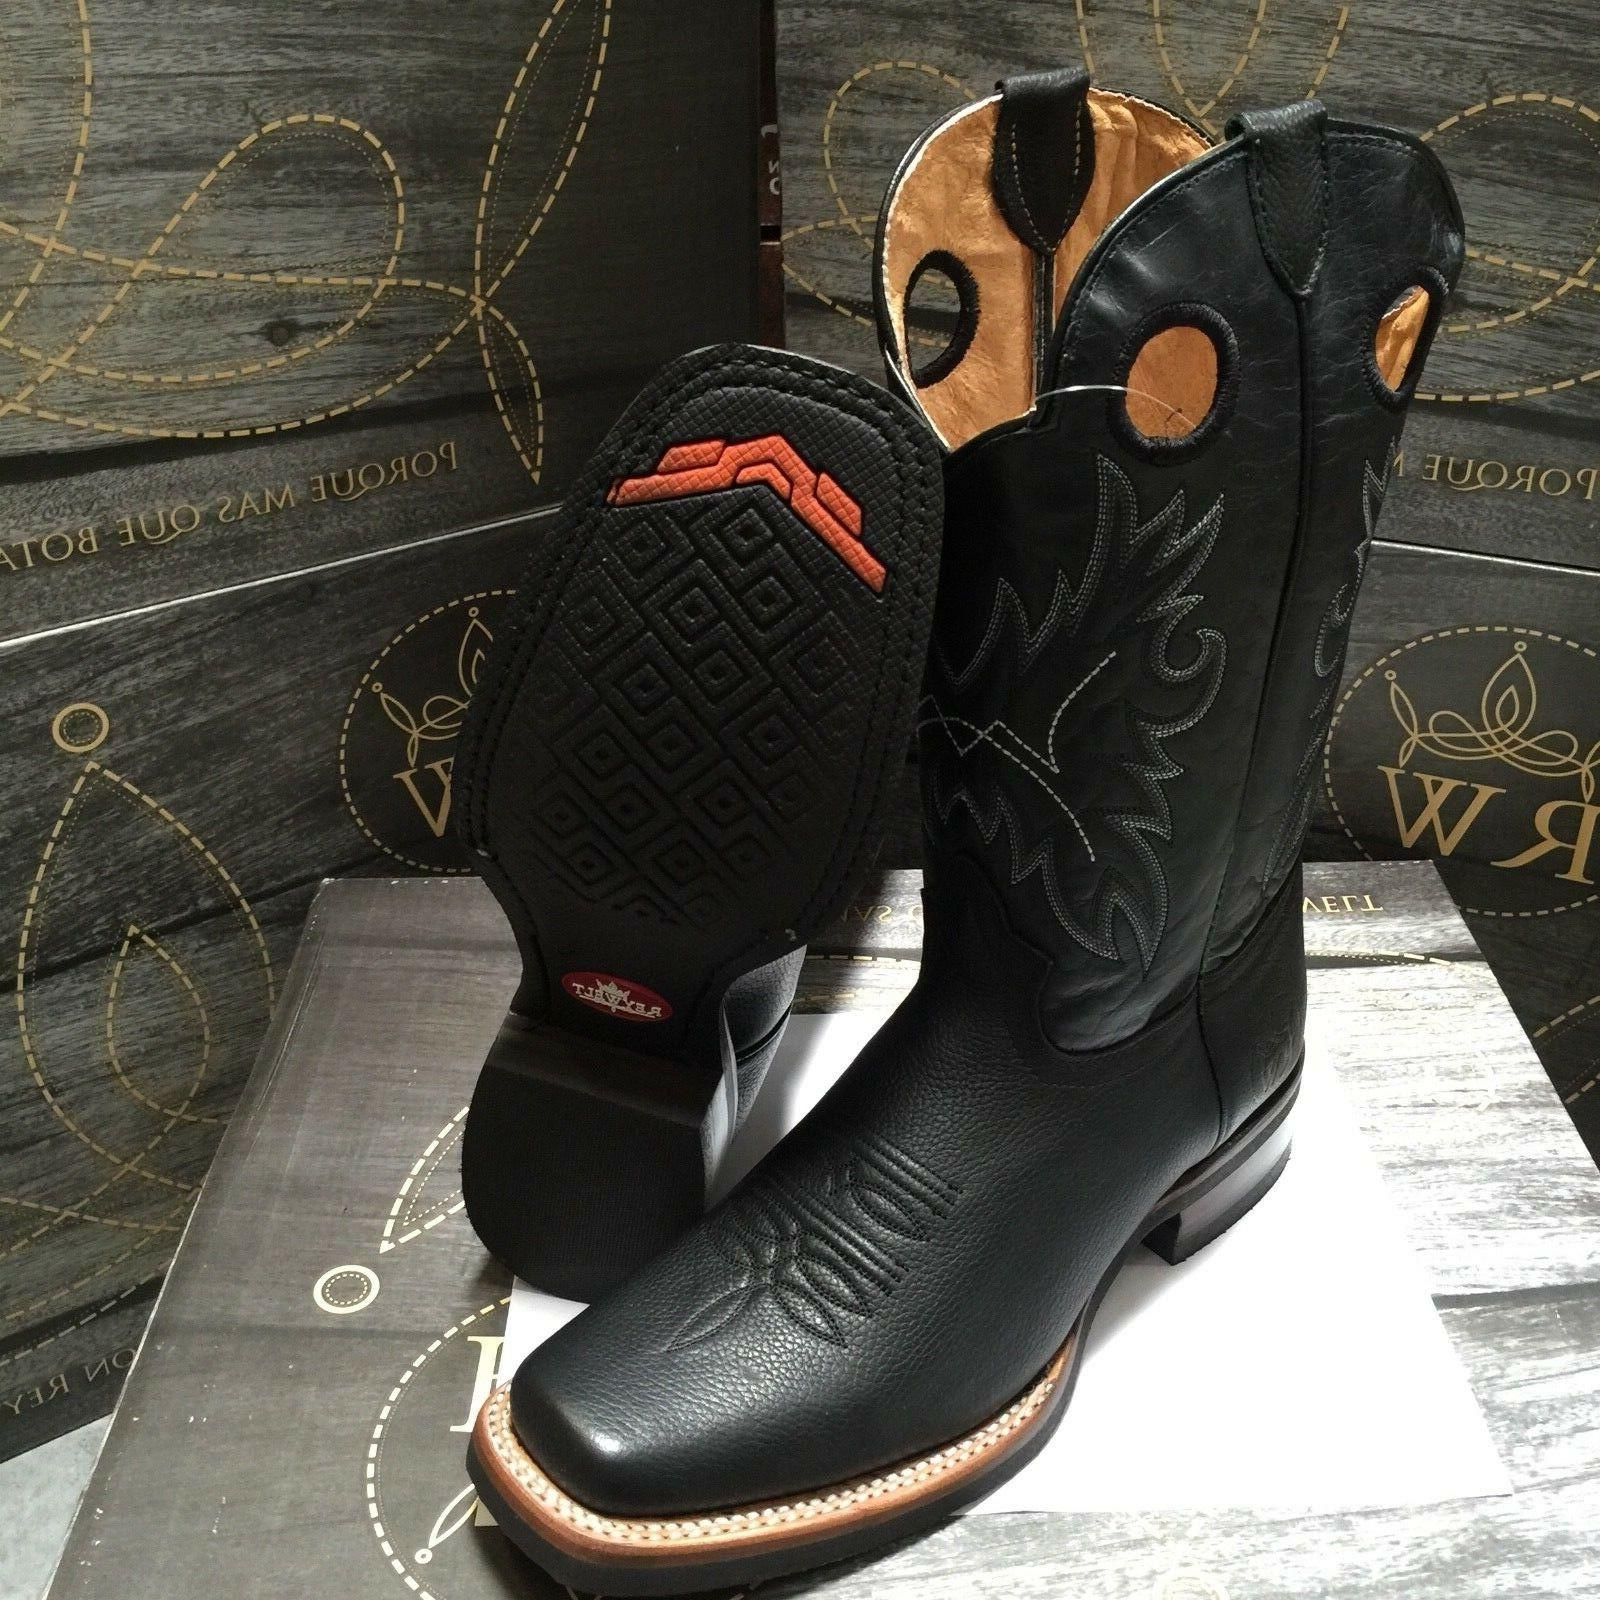 MEN'S RODEO BOOTS GENUINE FULL SQUARE TOE BOOTS #250-H